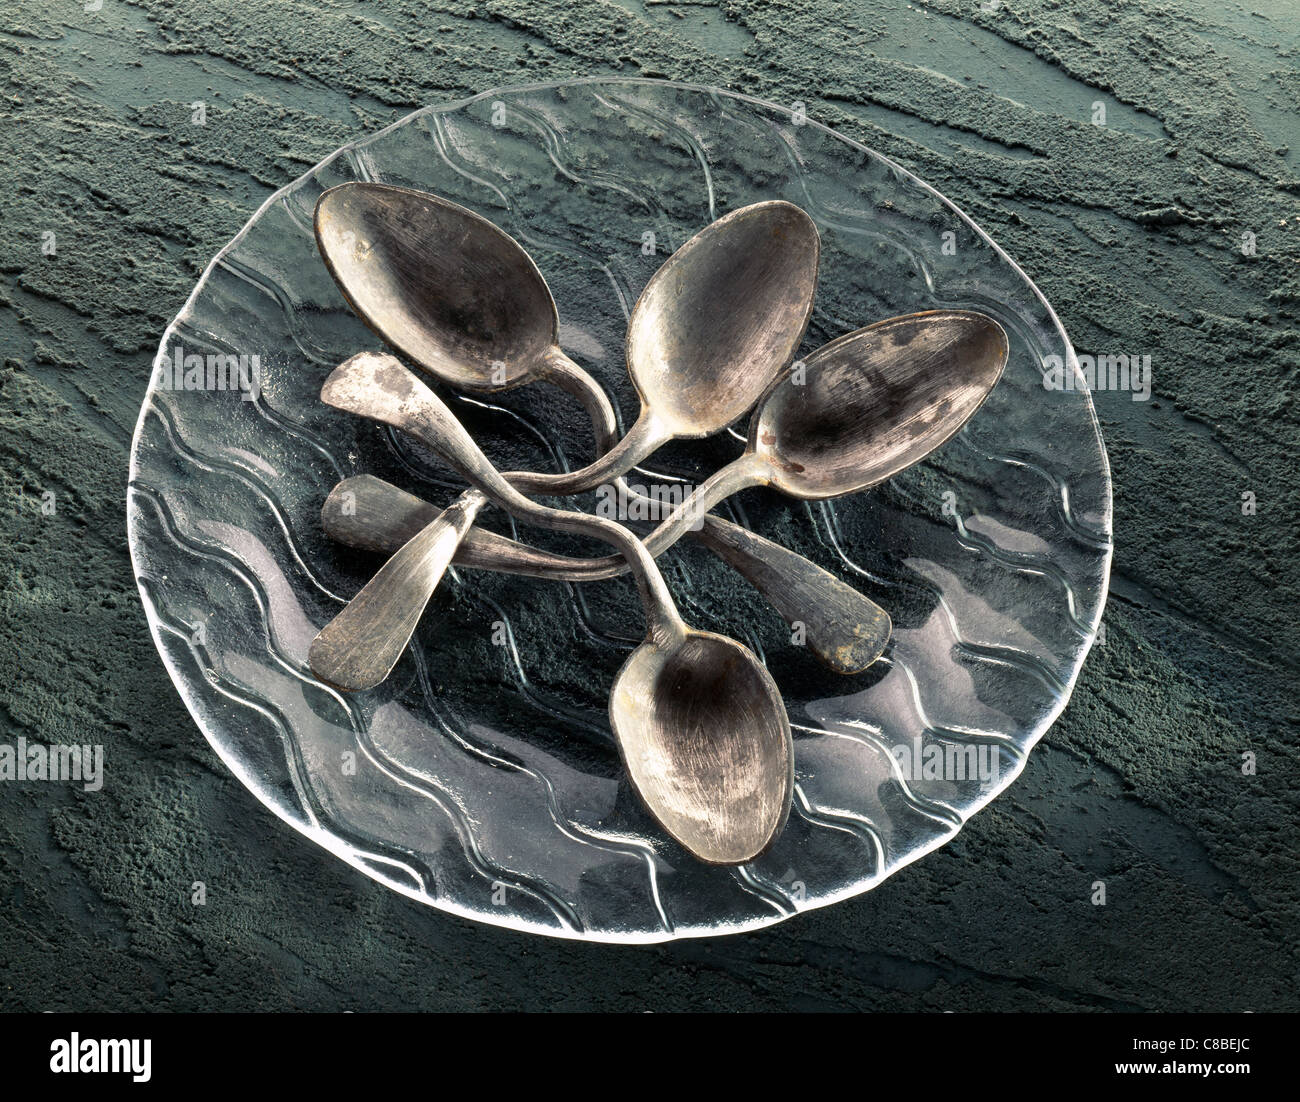 Bent spoons on plate - Stock Image